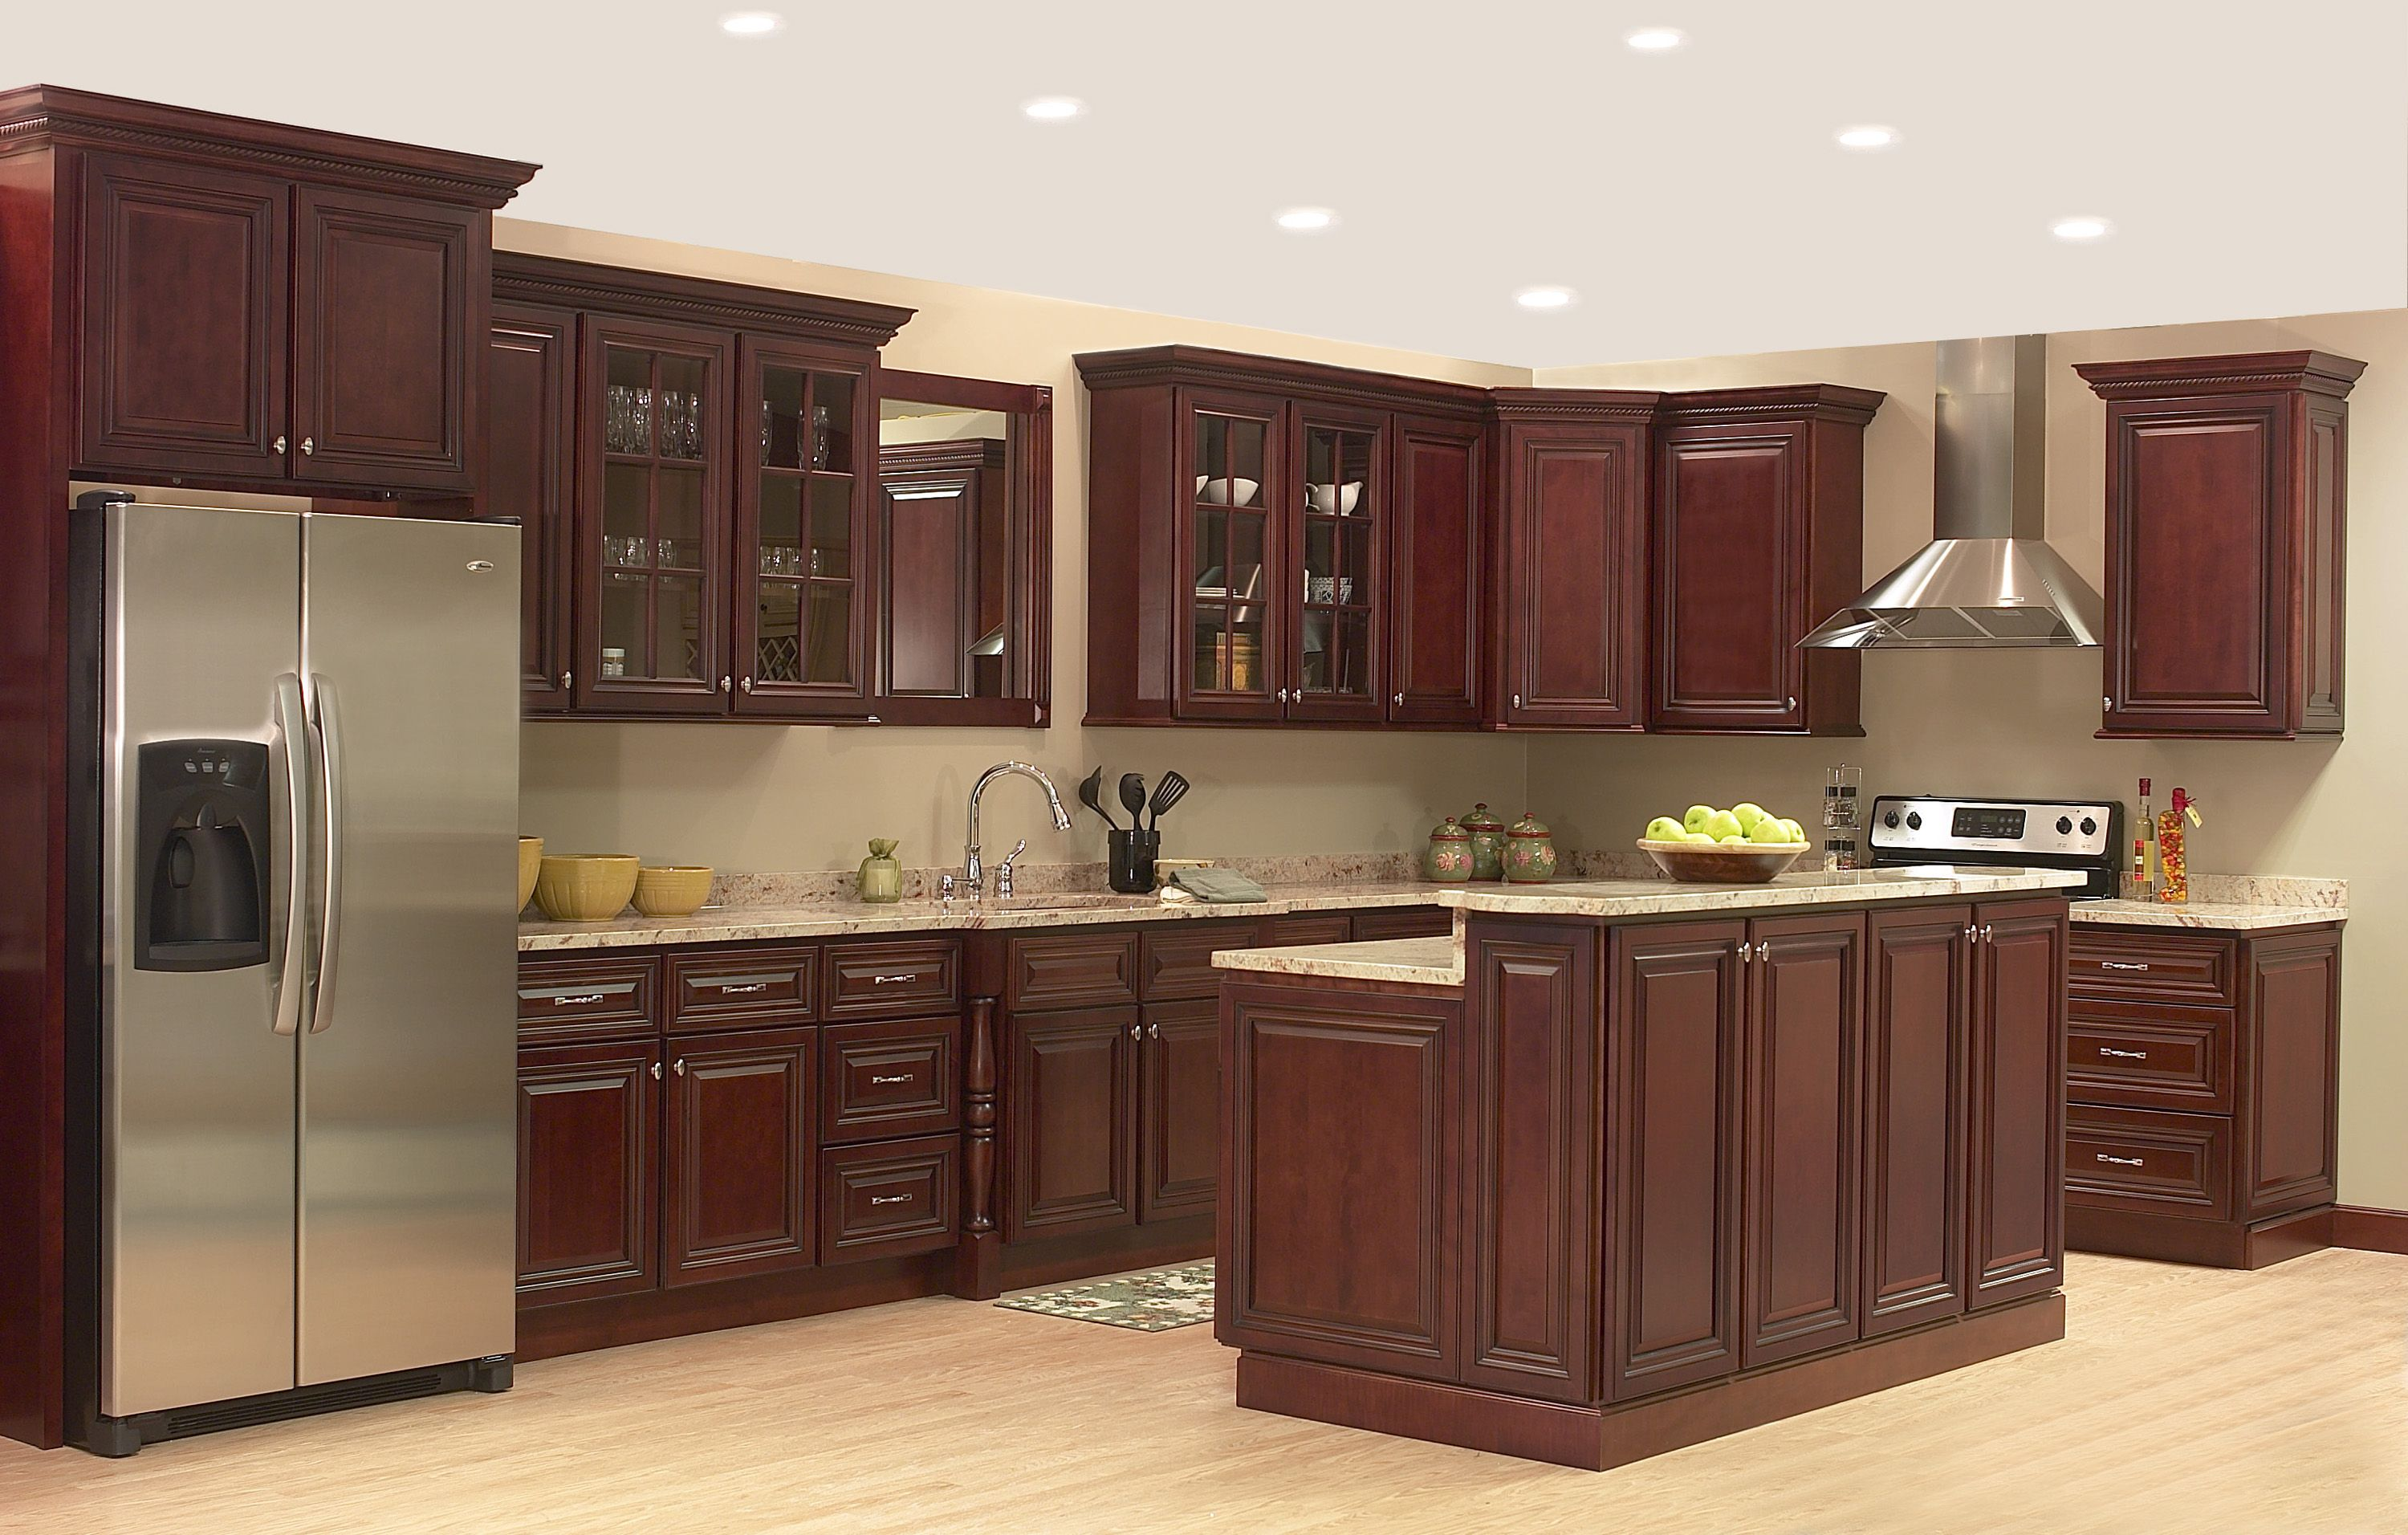 Kitchen Cabinet With Brown Marble Countertops In Beige Kitchen Kitchen Cabinets For Sale Kitchen Cabinets Interior Design Kitchen